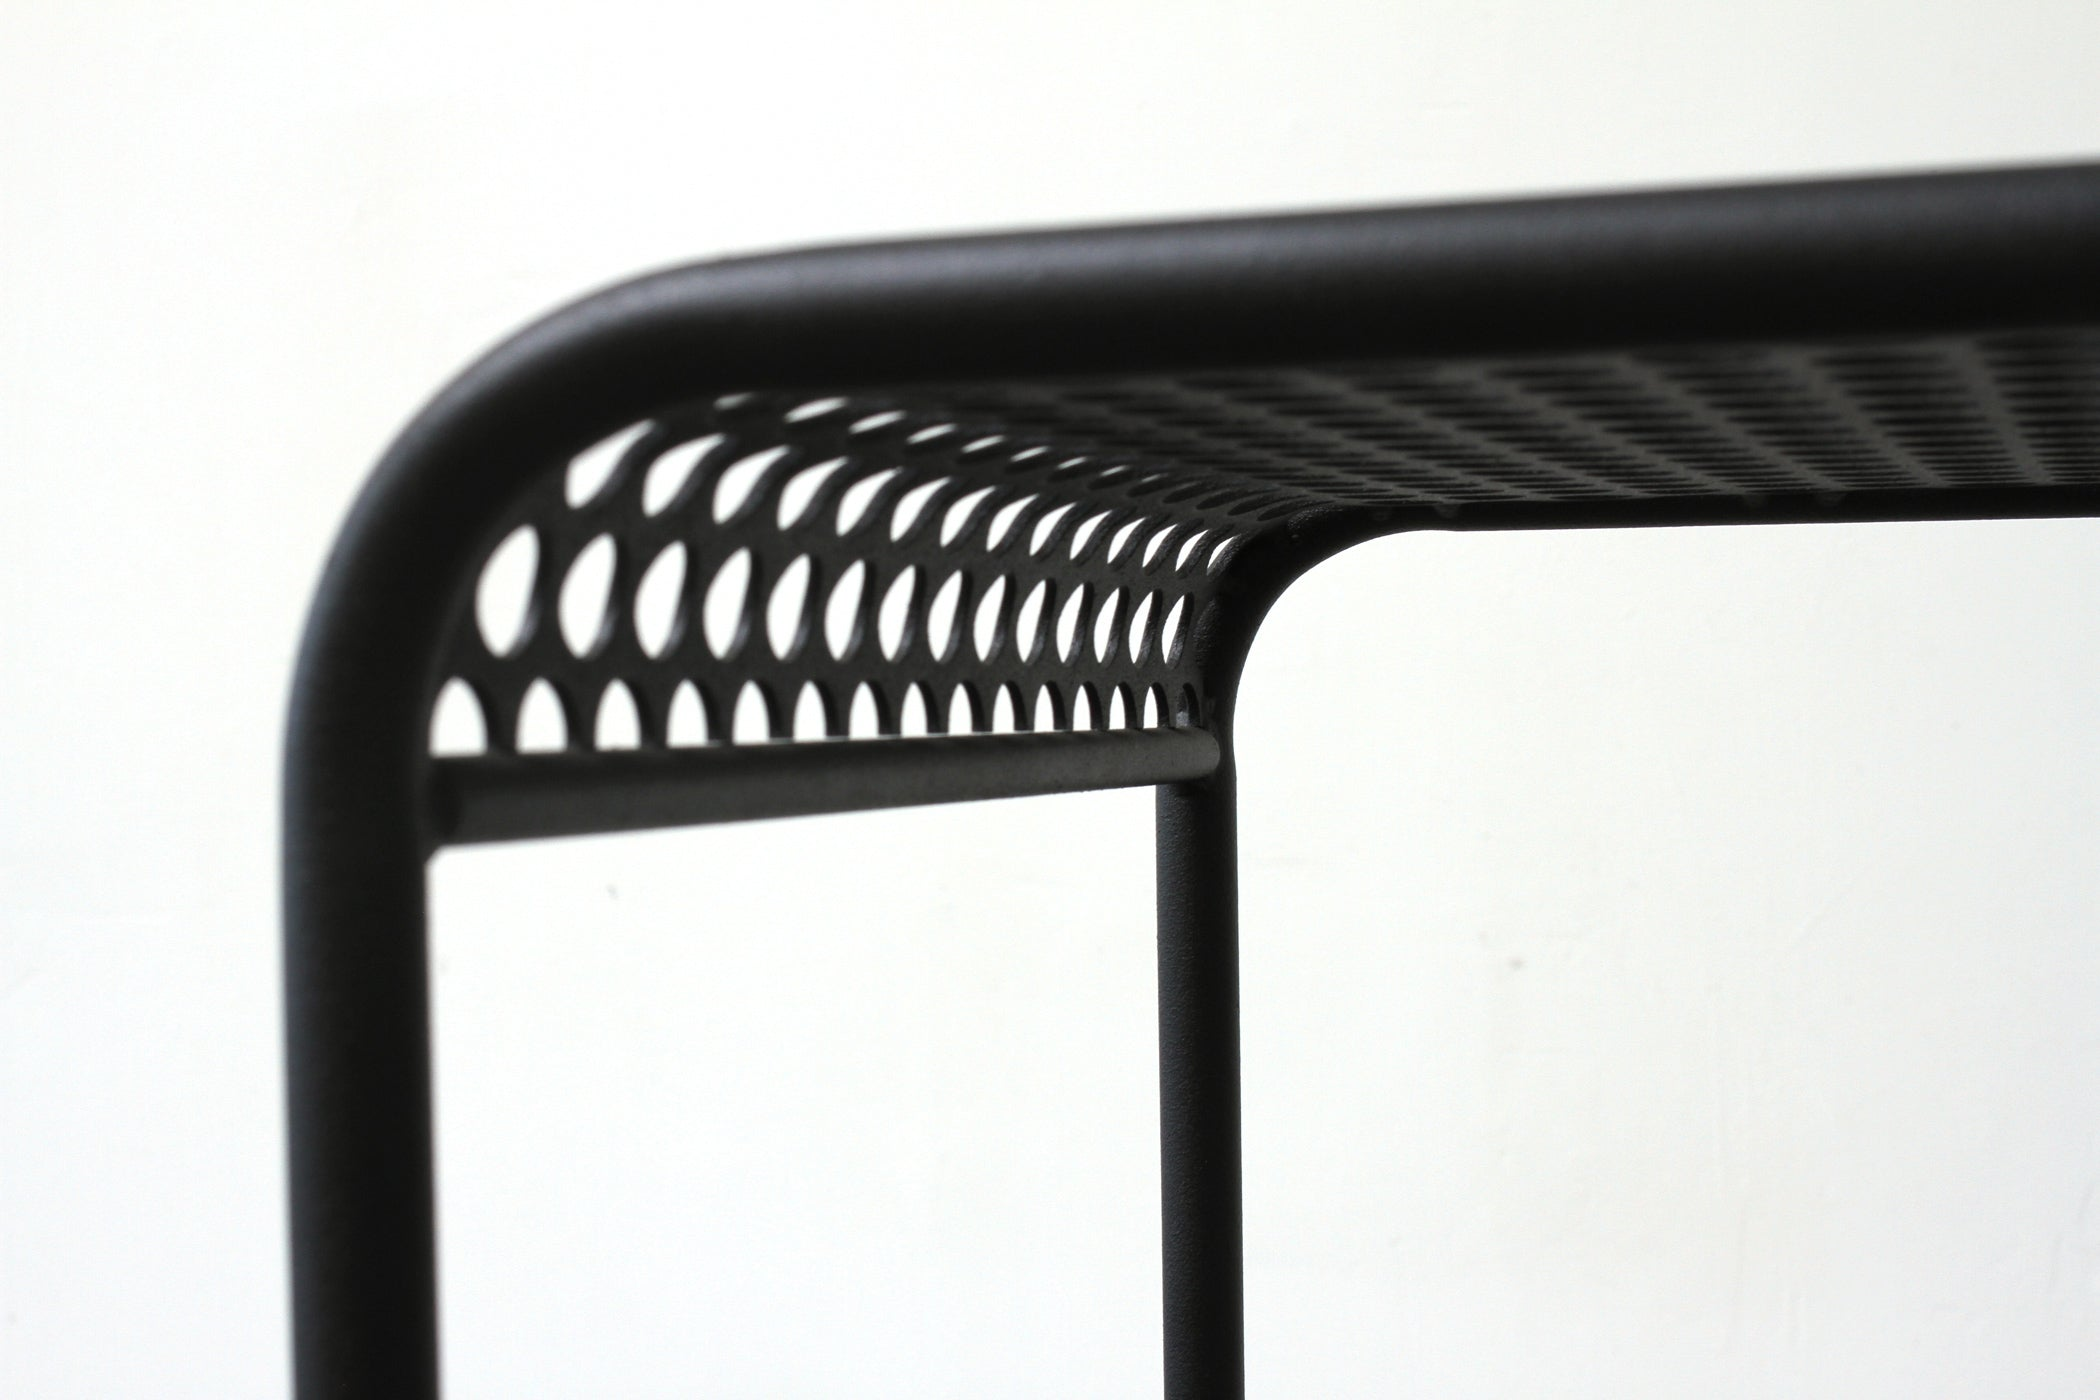 RAD Furniture's Perforated Bent-Profile Stool - detail